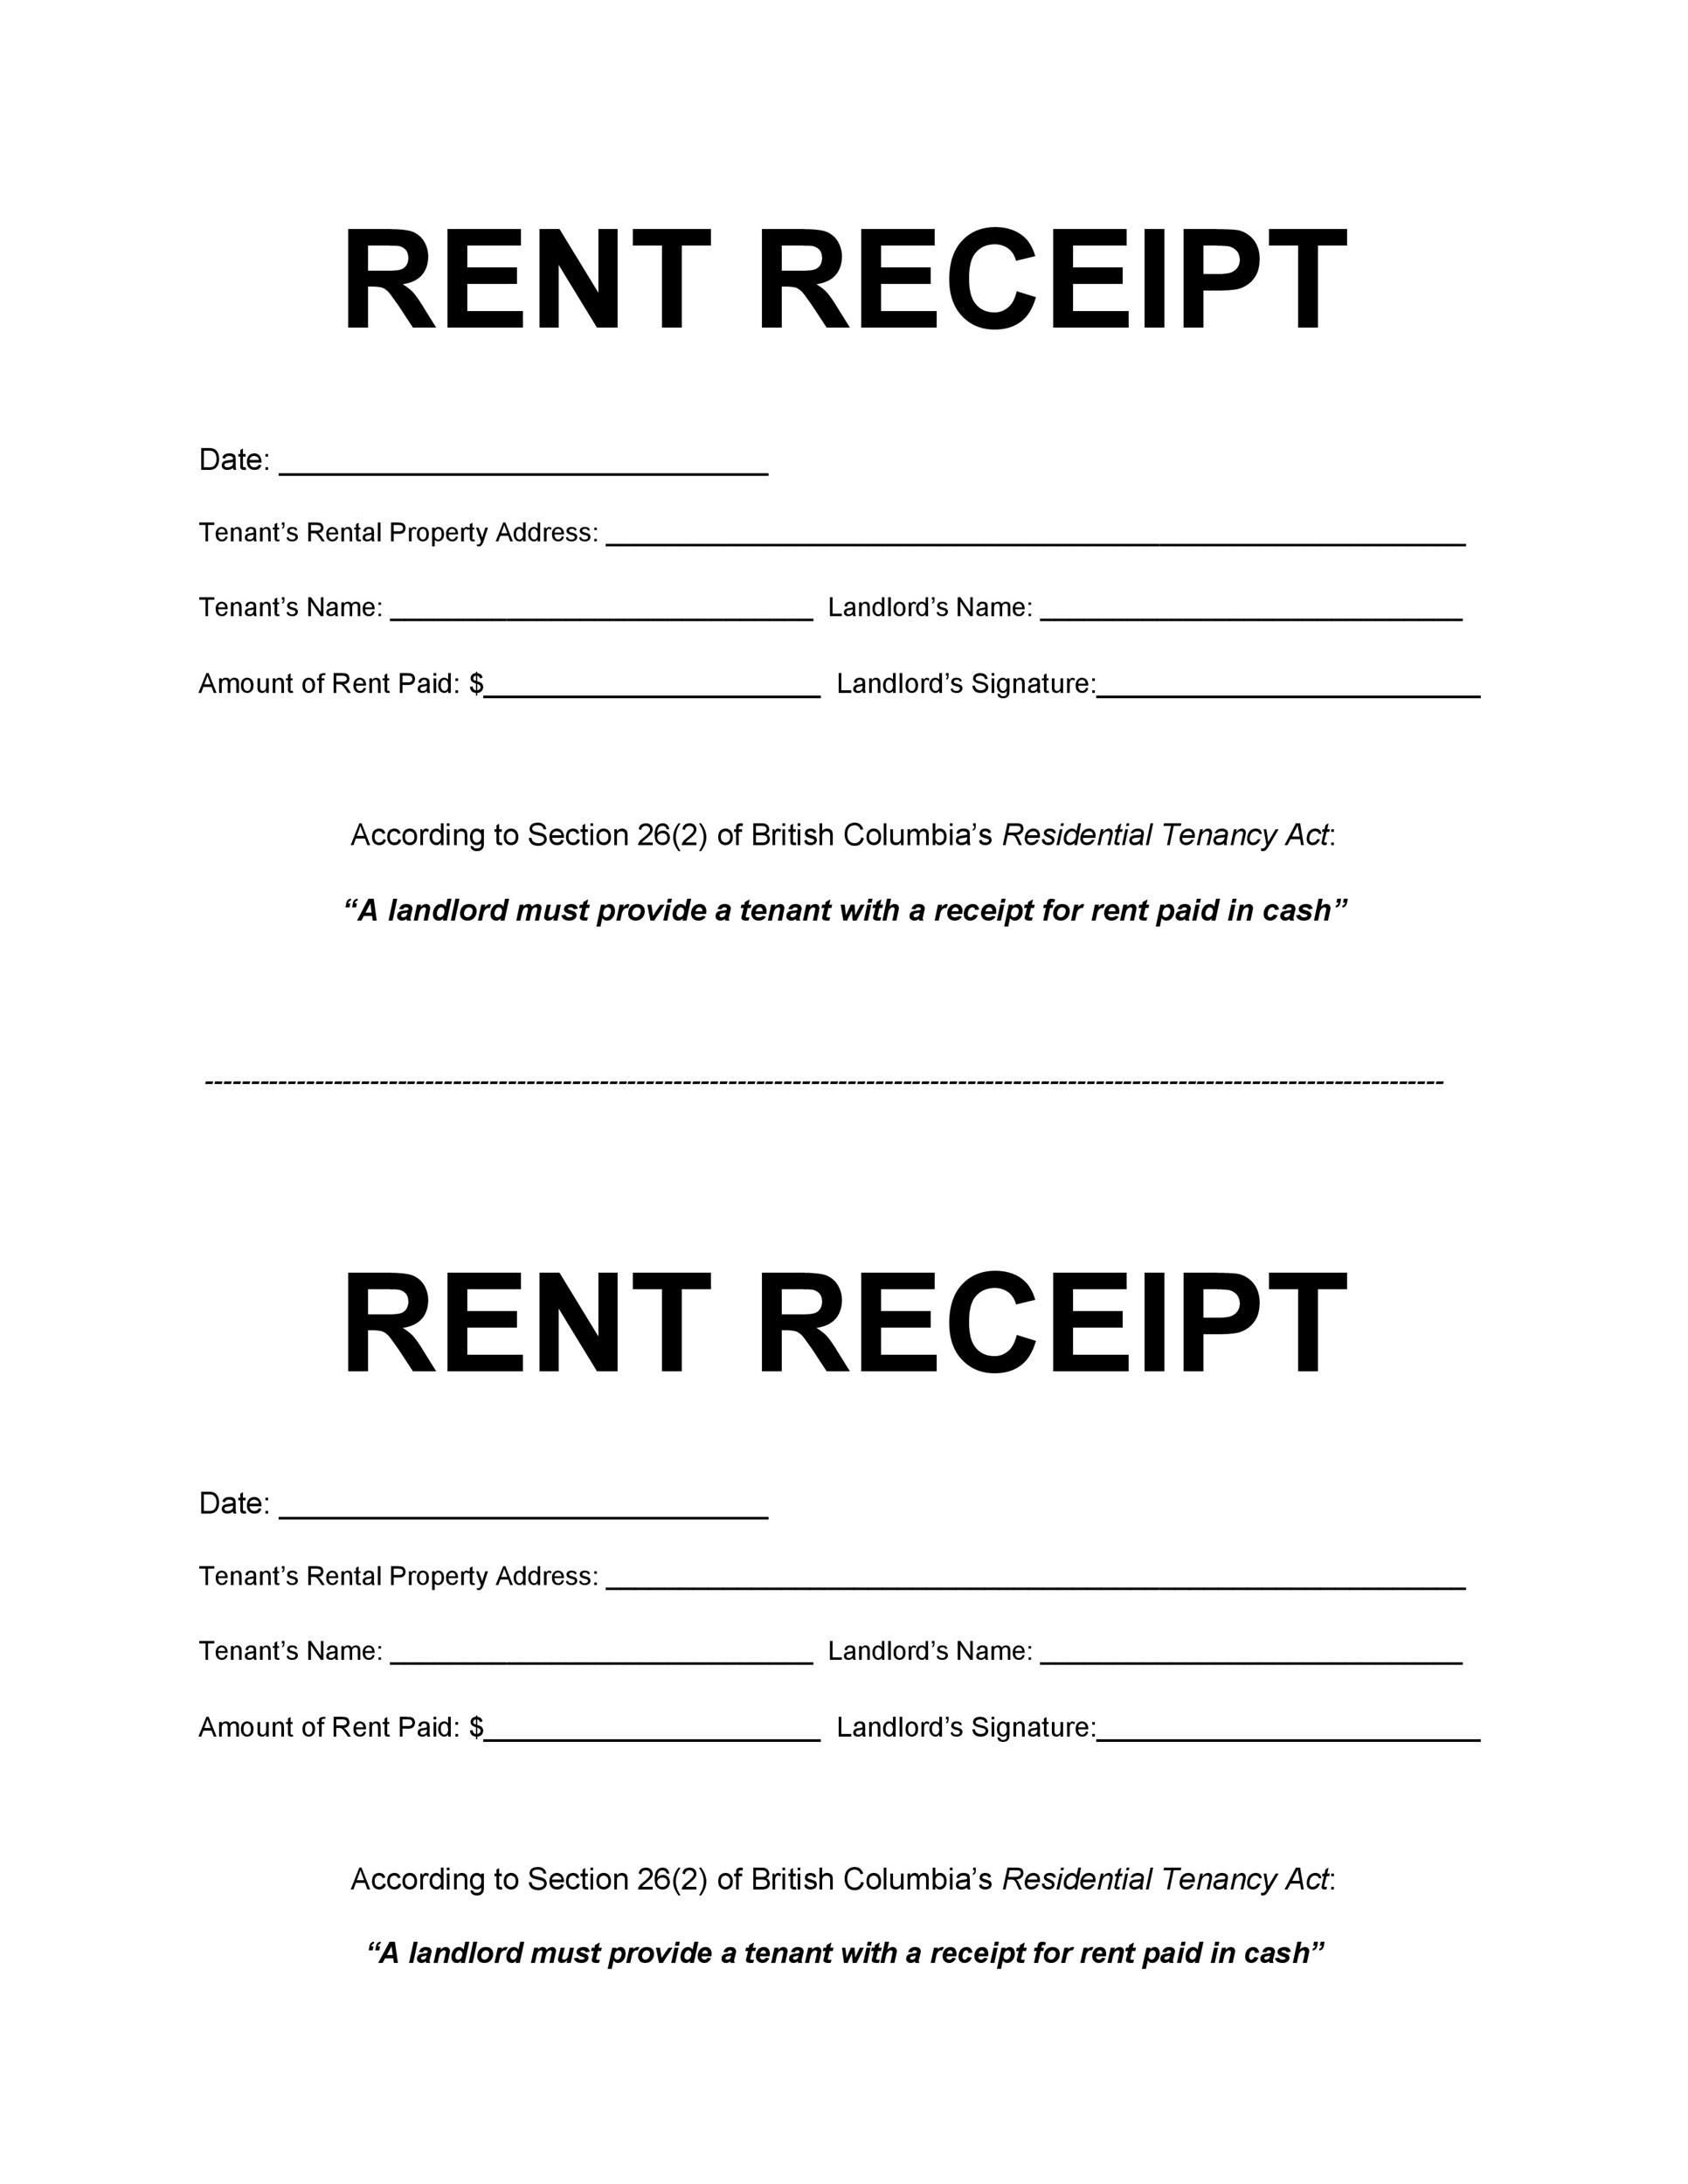 008 Rare Rent Payment Receipt Template Image  Excel FreeFull